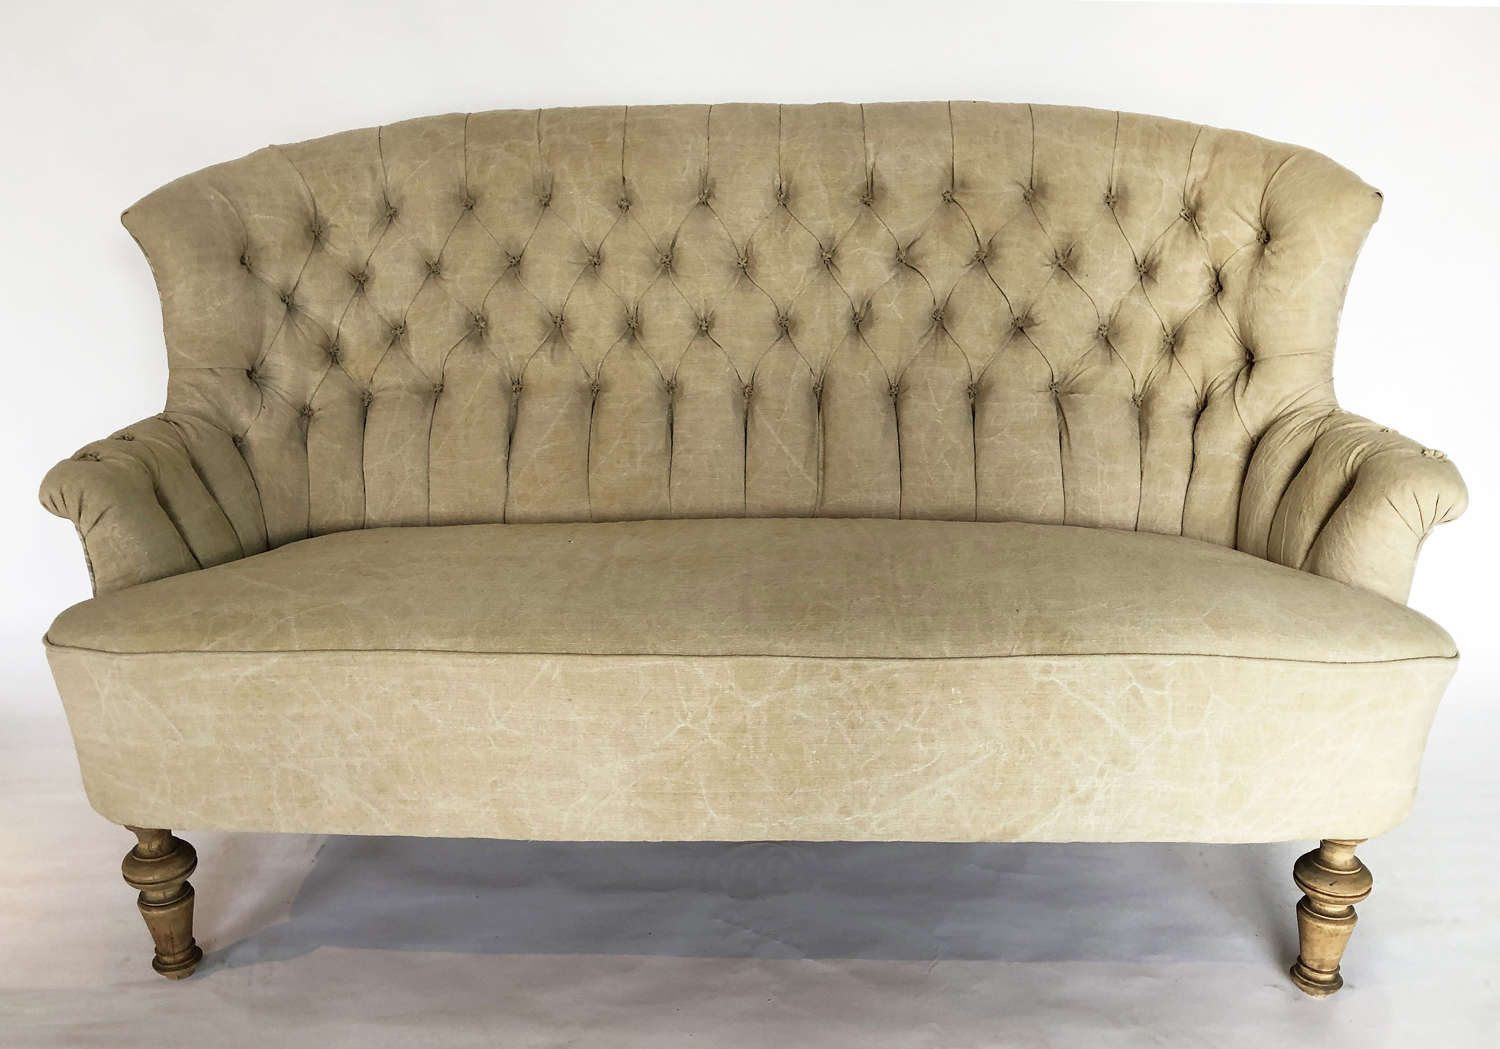 Small curved French Sofa with buttoned back circa 1930